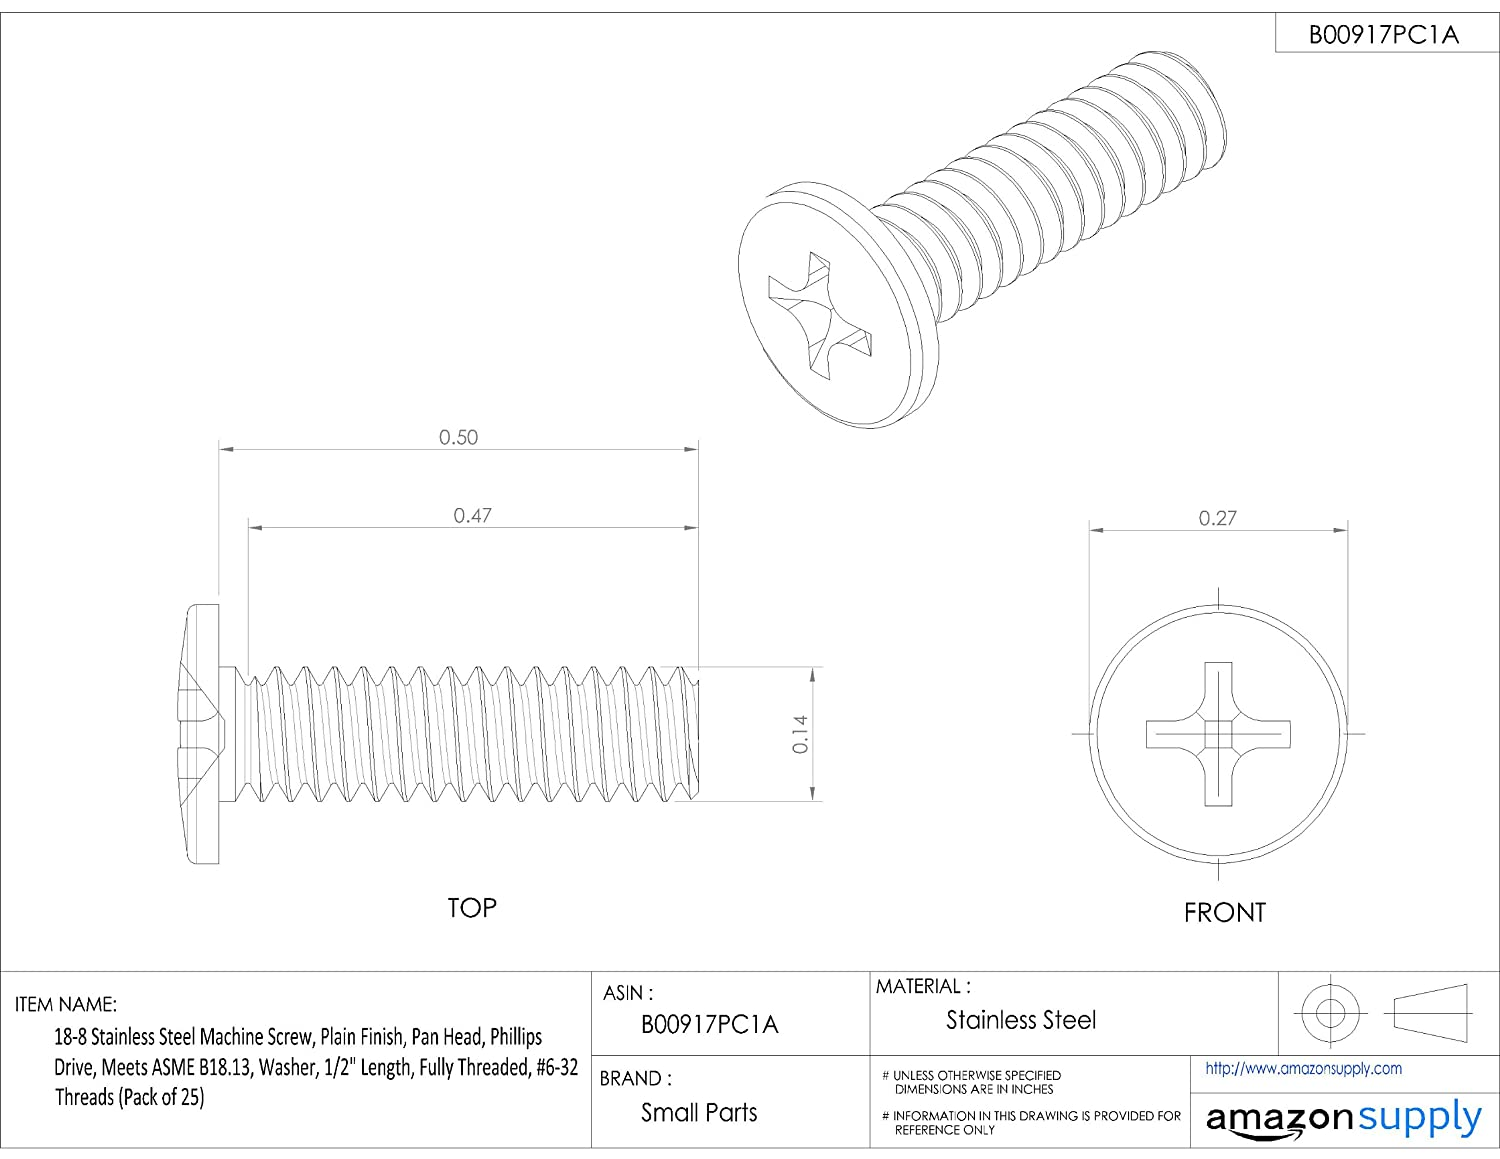 Fully Threaded External-Tooth Lock Washer #6-32 UNC Threads 1//2 Length Small Parts Plain Finish Phillips Drive 1//2 Length Meets ASME B18.13 18-8 Stainless Steel Machine Screw Pan Head Pack of 25